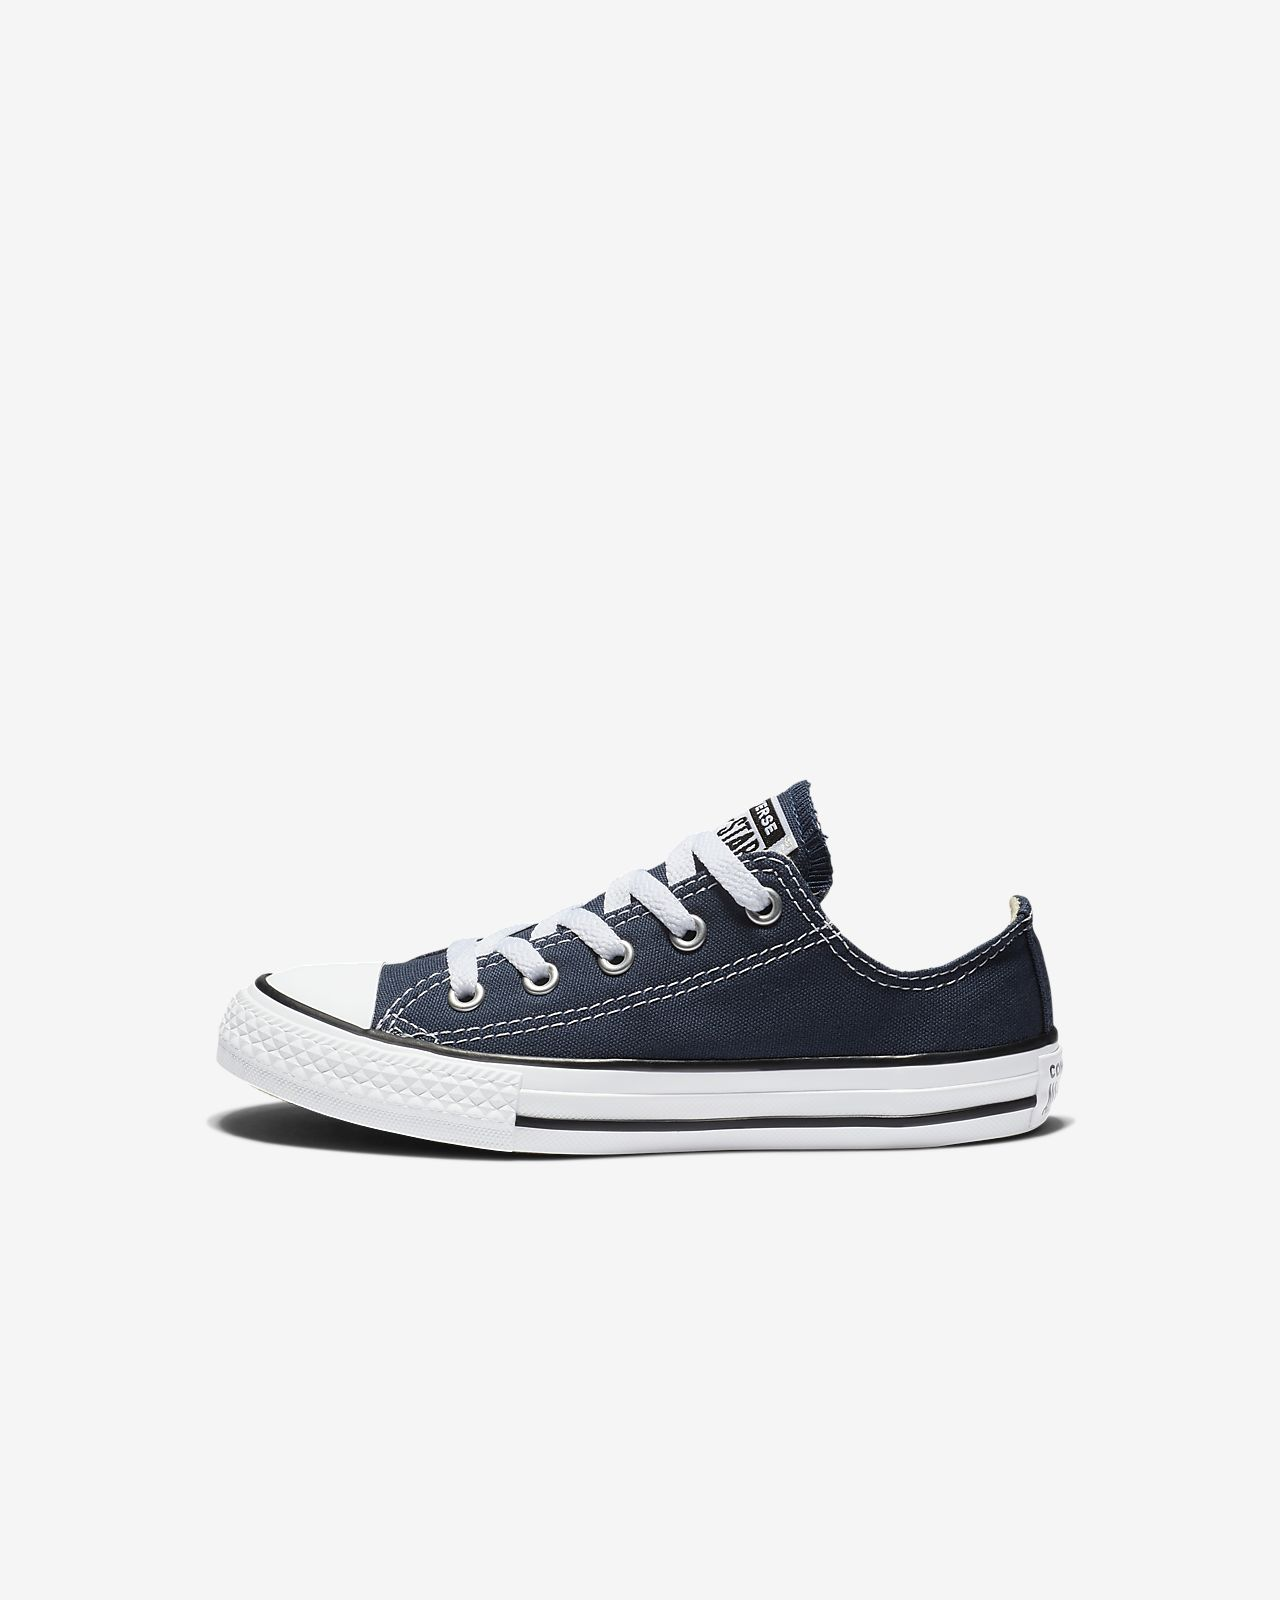 daa4c91ed06c20 Converse Chuck Taylor All Star Low Top (10.5c-3y) Little Kids  Shoe ...